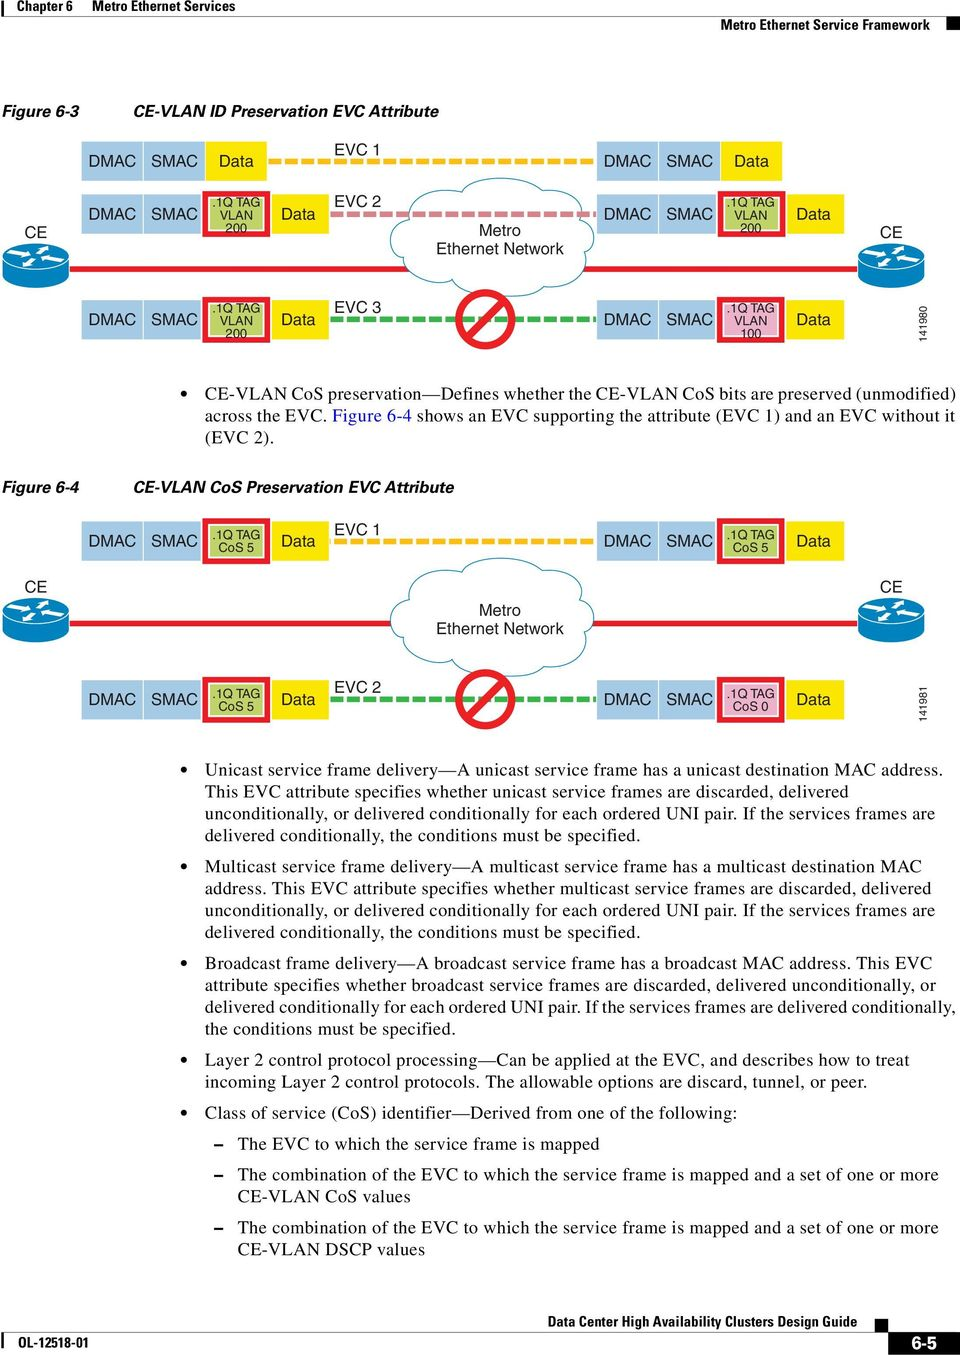 1Q TAG DMAC SMAC VLAN Data DMAC SMAC VLAN Data 200 100 141980 CE-VLAN CoS preservation Defines whether the CE-VLAN CoS bits are preserved (unmodified) across the EVC.